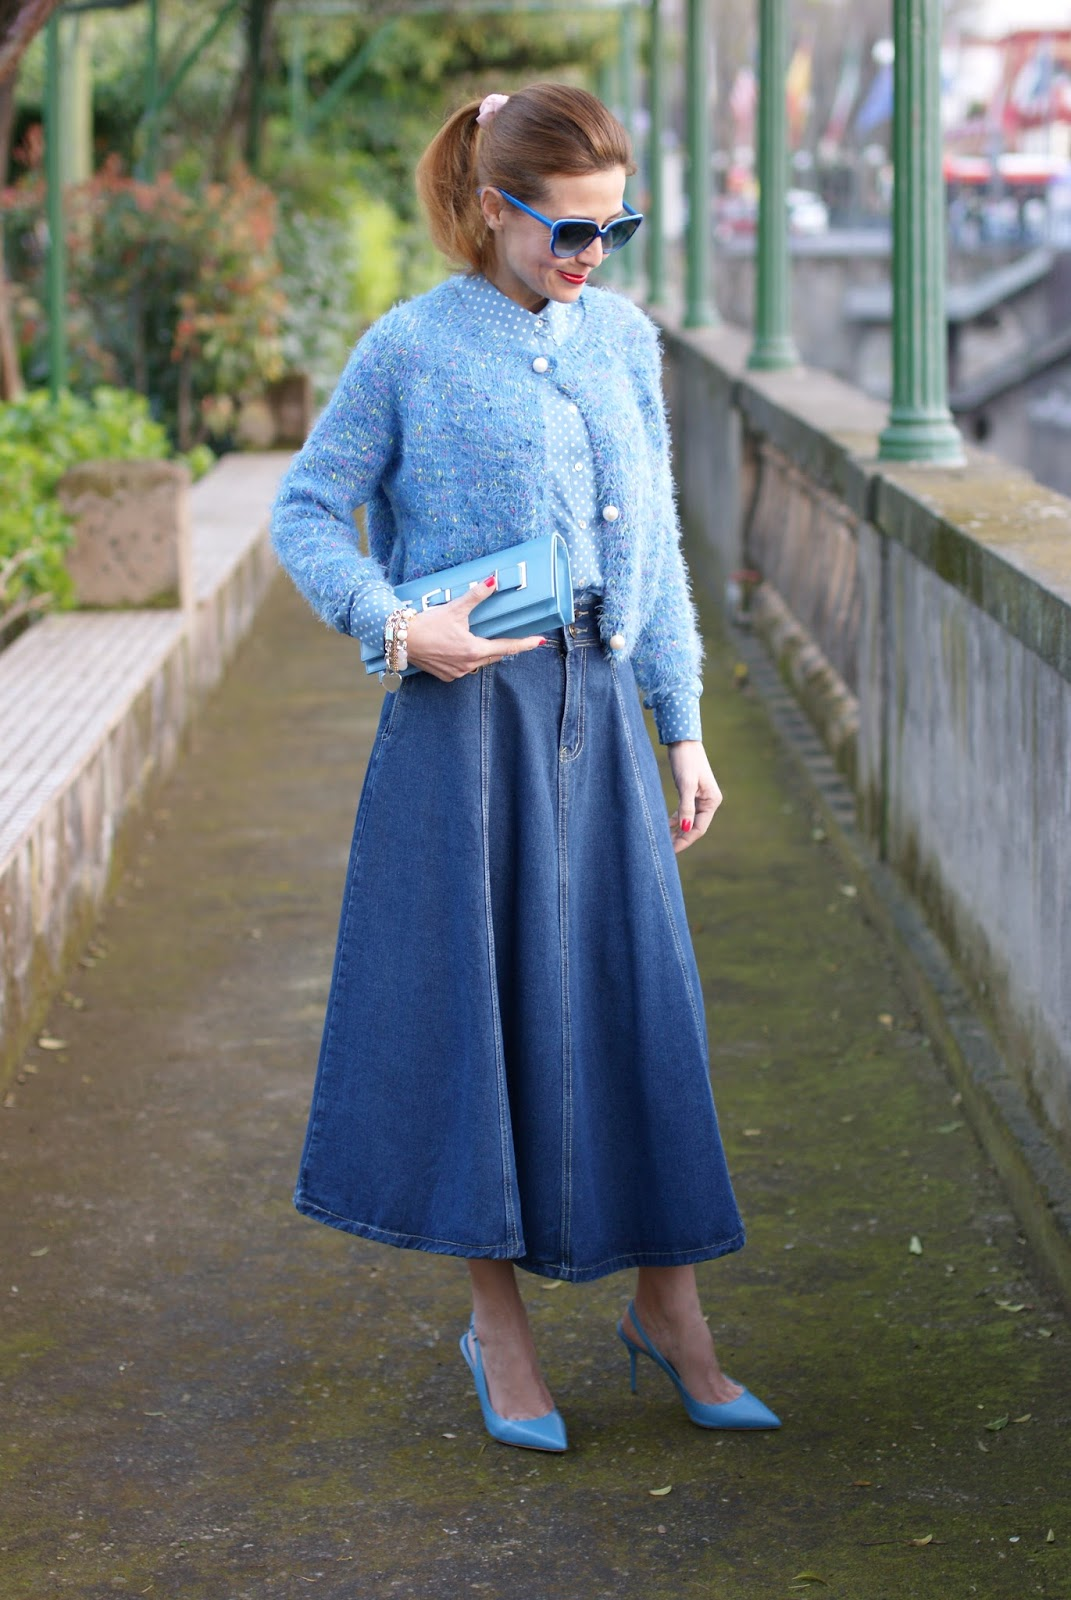 Denim midi circle skirt, star print shirt and Le Silla shoes on Fashion and Cookies fashion blog, fashion blogger style